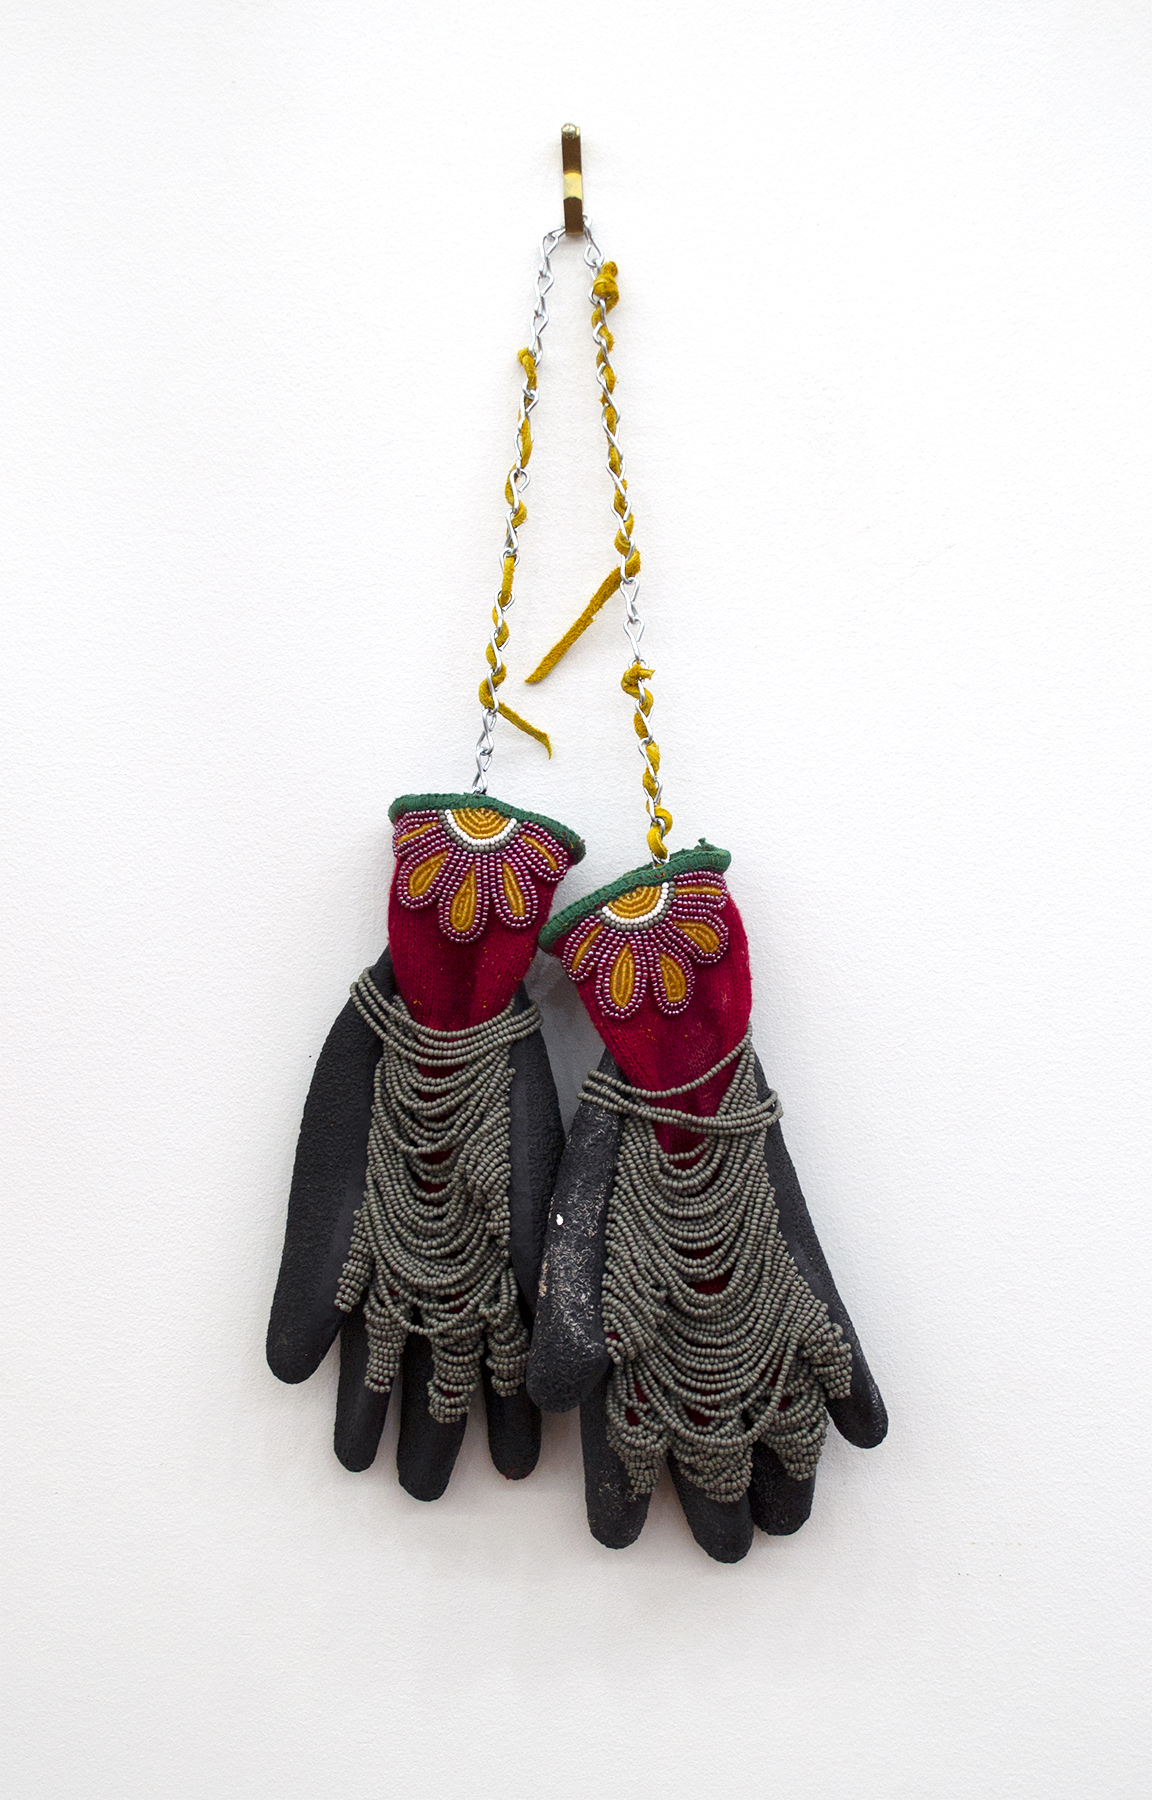 """Half Son Gloves, 2018, Audie Murray (Métis), Gloves, beads, leather, metal chain, 17"""" x 8.5"""" x 3"""", SOLD"""